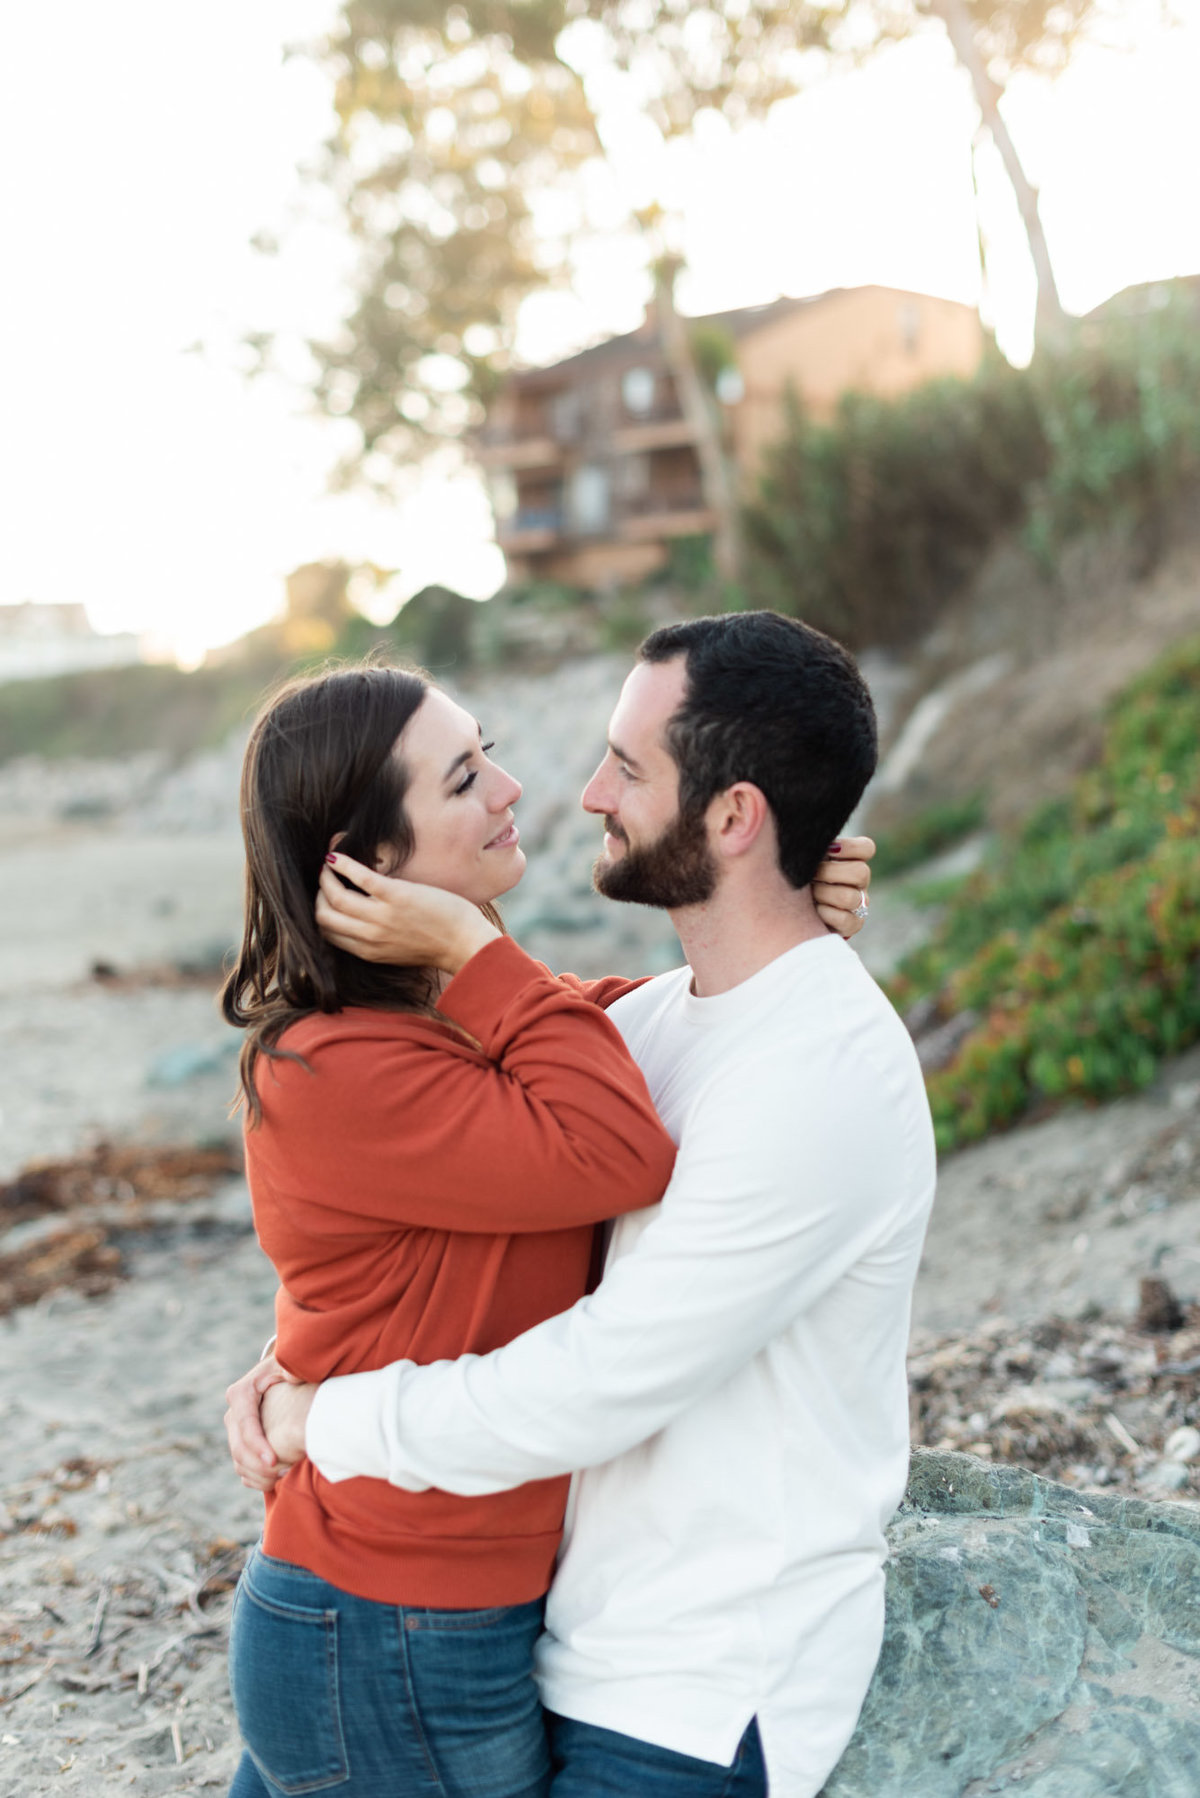 Central-Coast-Engagement-Session-by-San-Luis-Obispo-Wedding-Photographer-Kirsten-Bullard-24